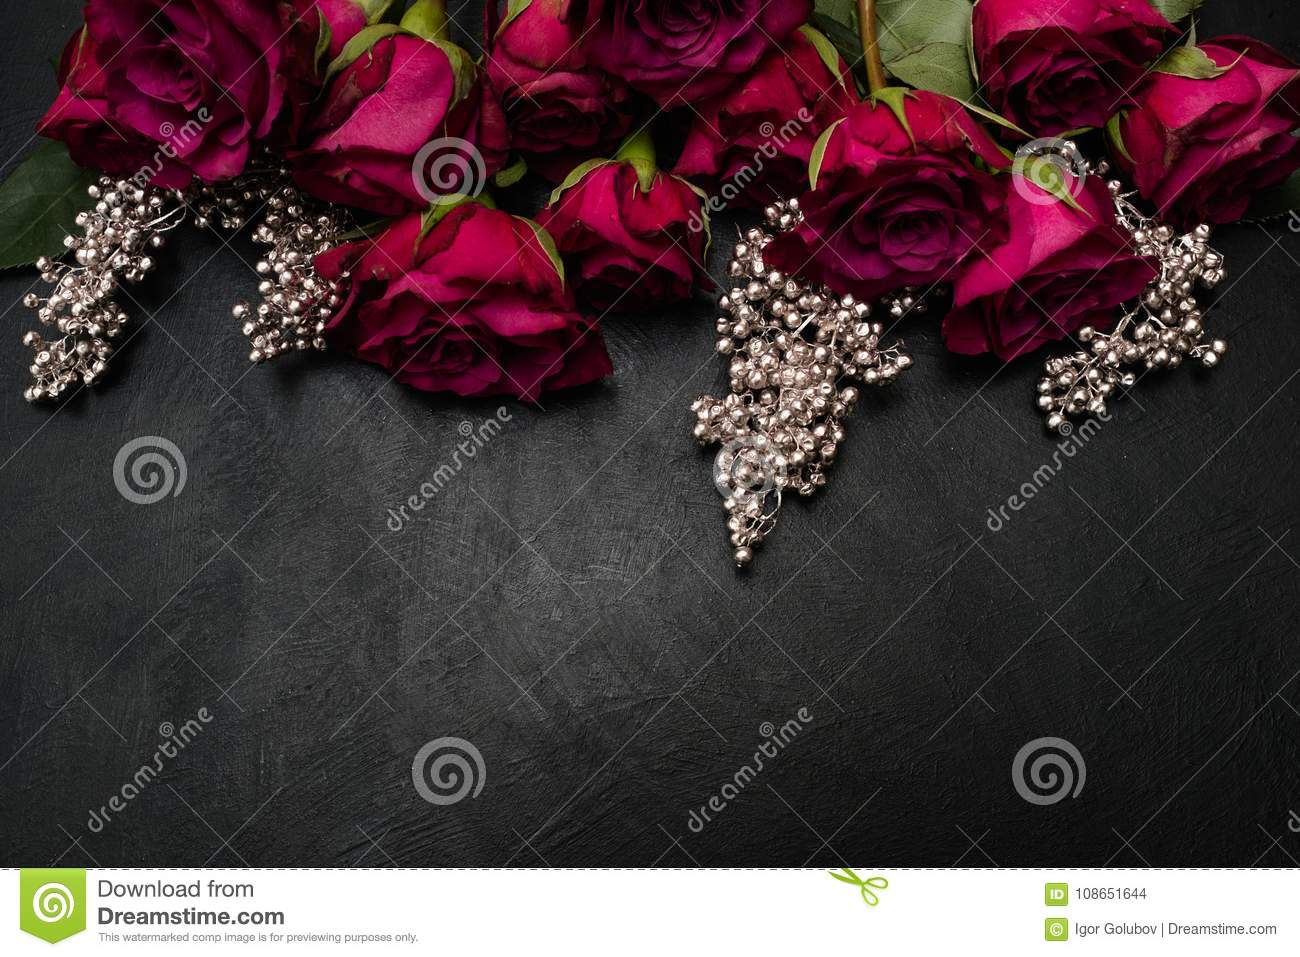 Gothic Wedding Flowers Burgundy Roses Arrangement Stock Photo